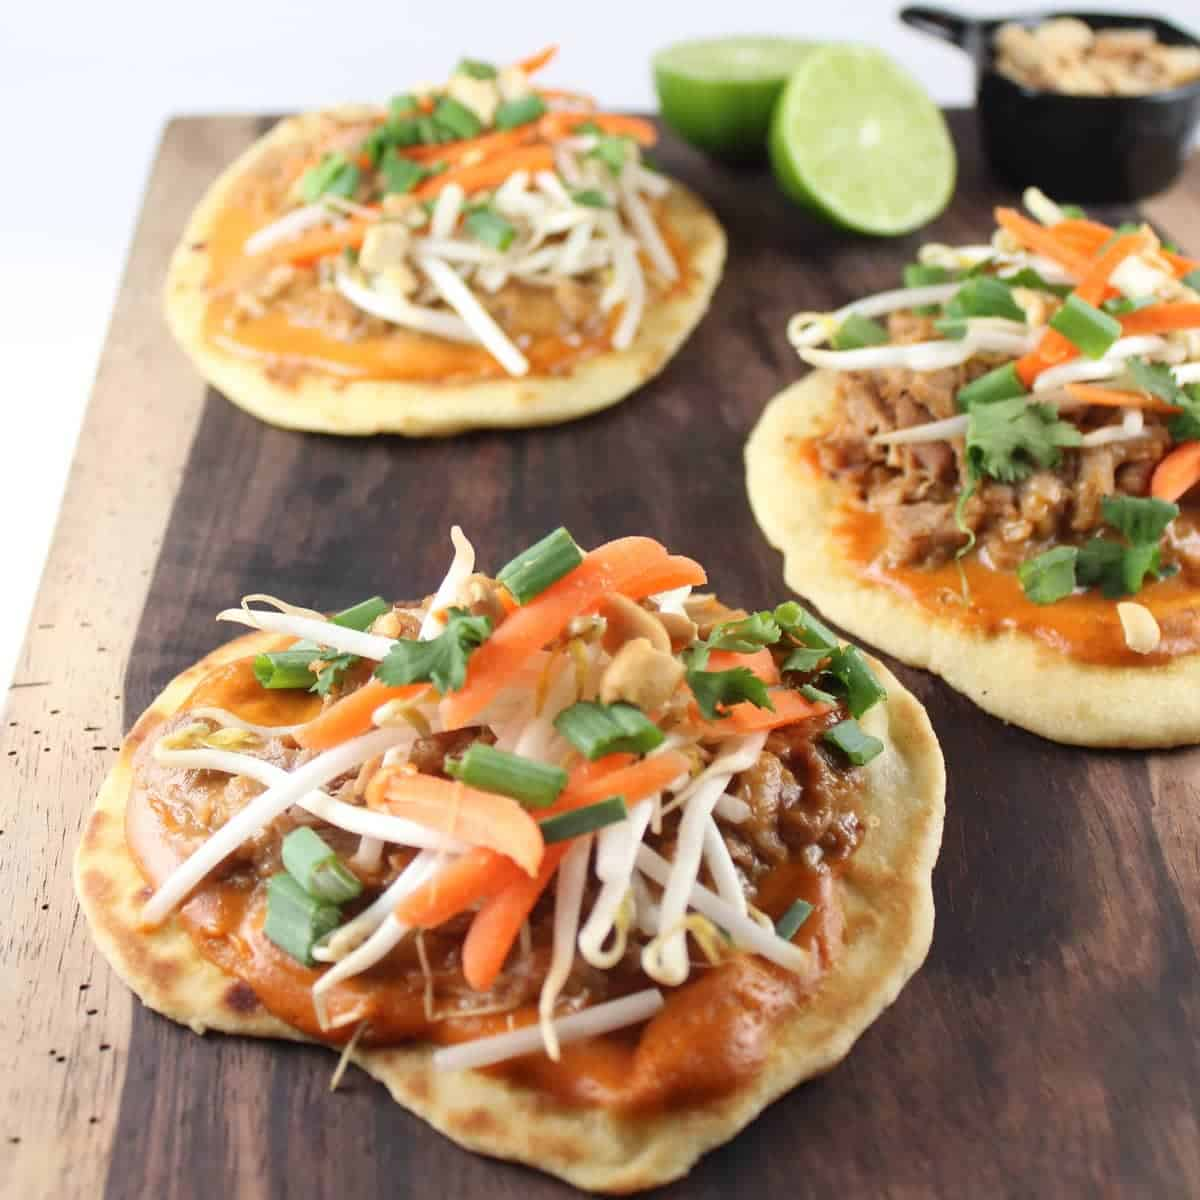 Thai Peanut Pulled Pork Roti Bread Pizzas